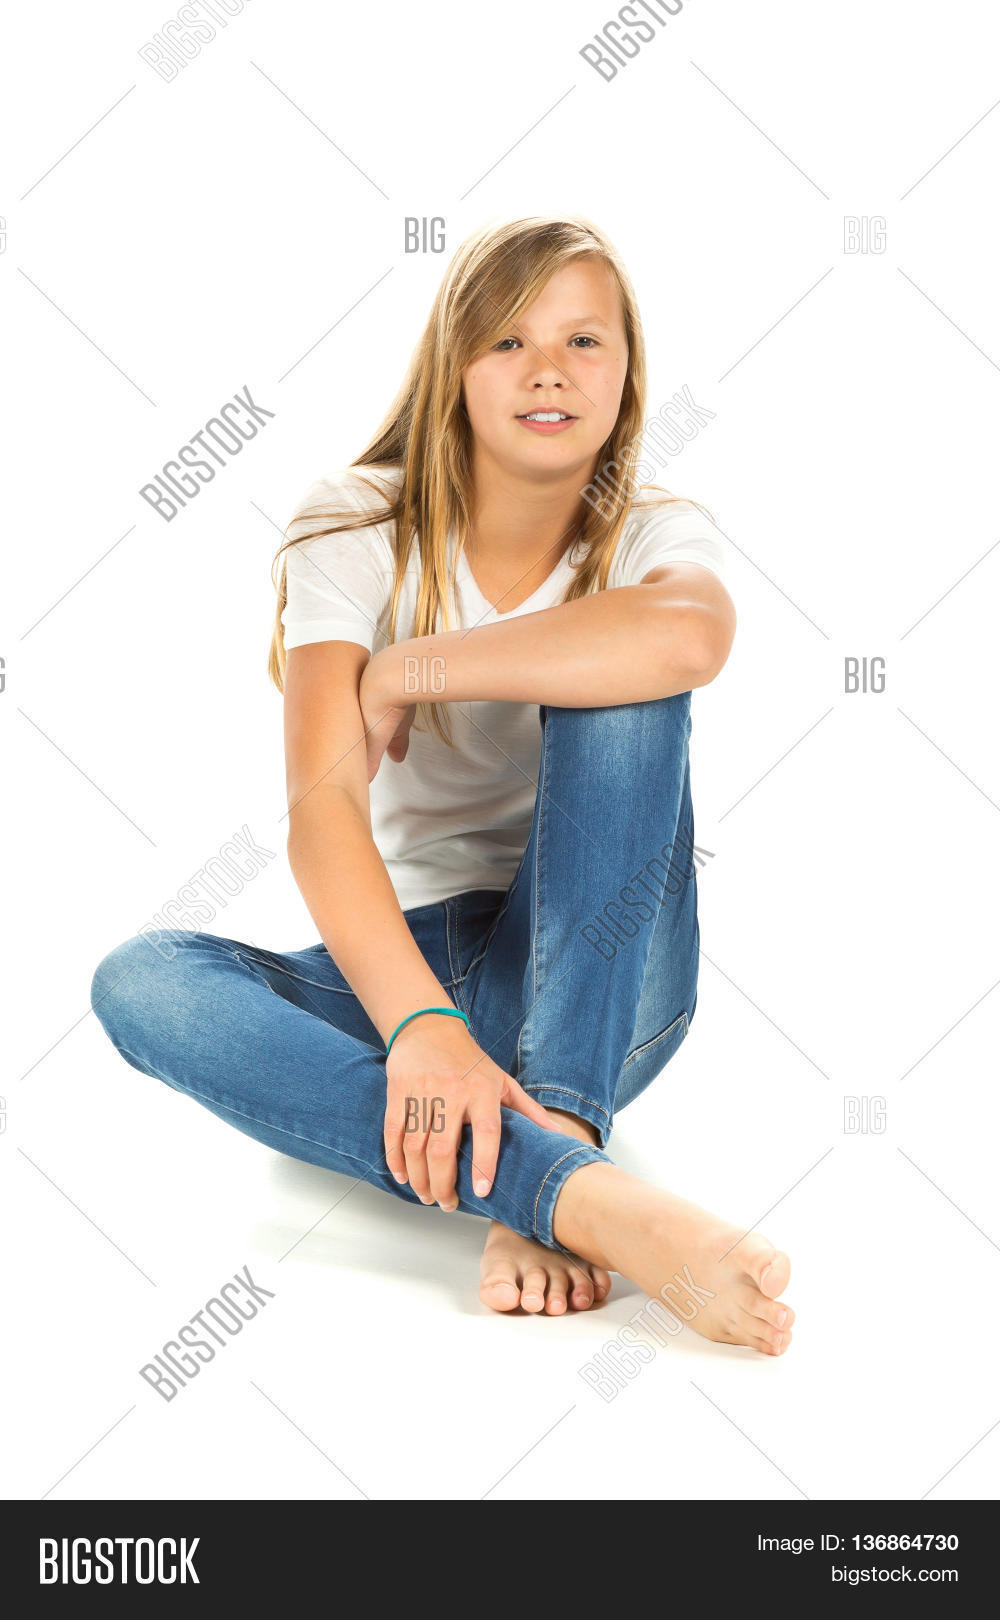 White t shirt and blue jeans - Young Girl Sitting Barefoot With White T Shirt And Blue Jeans Over White Background